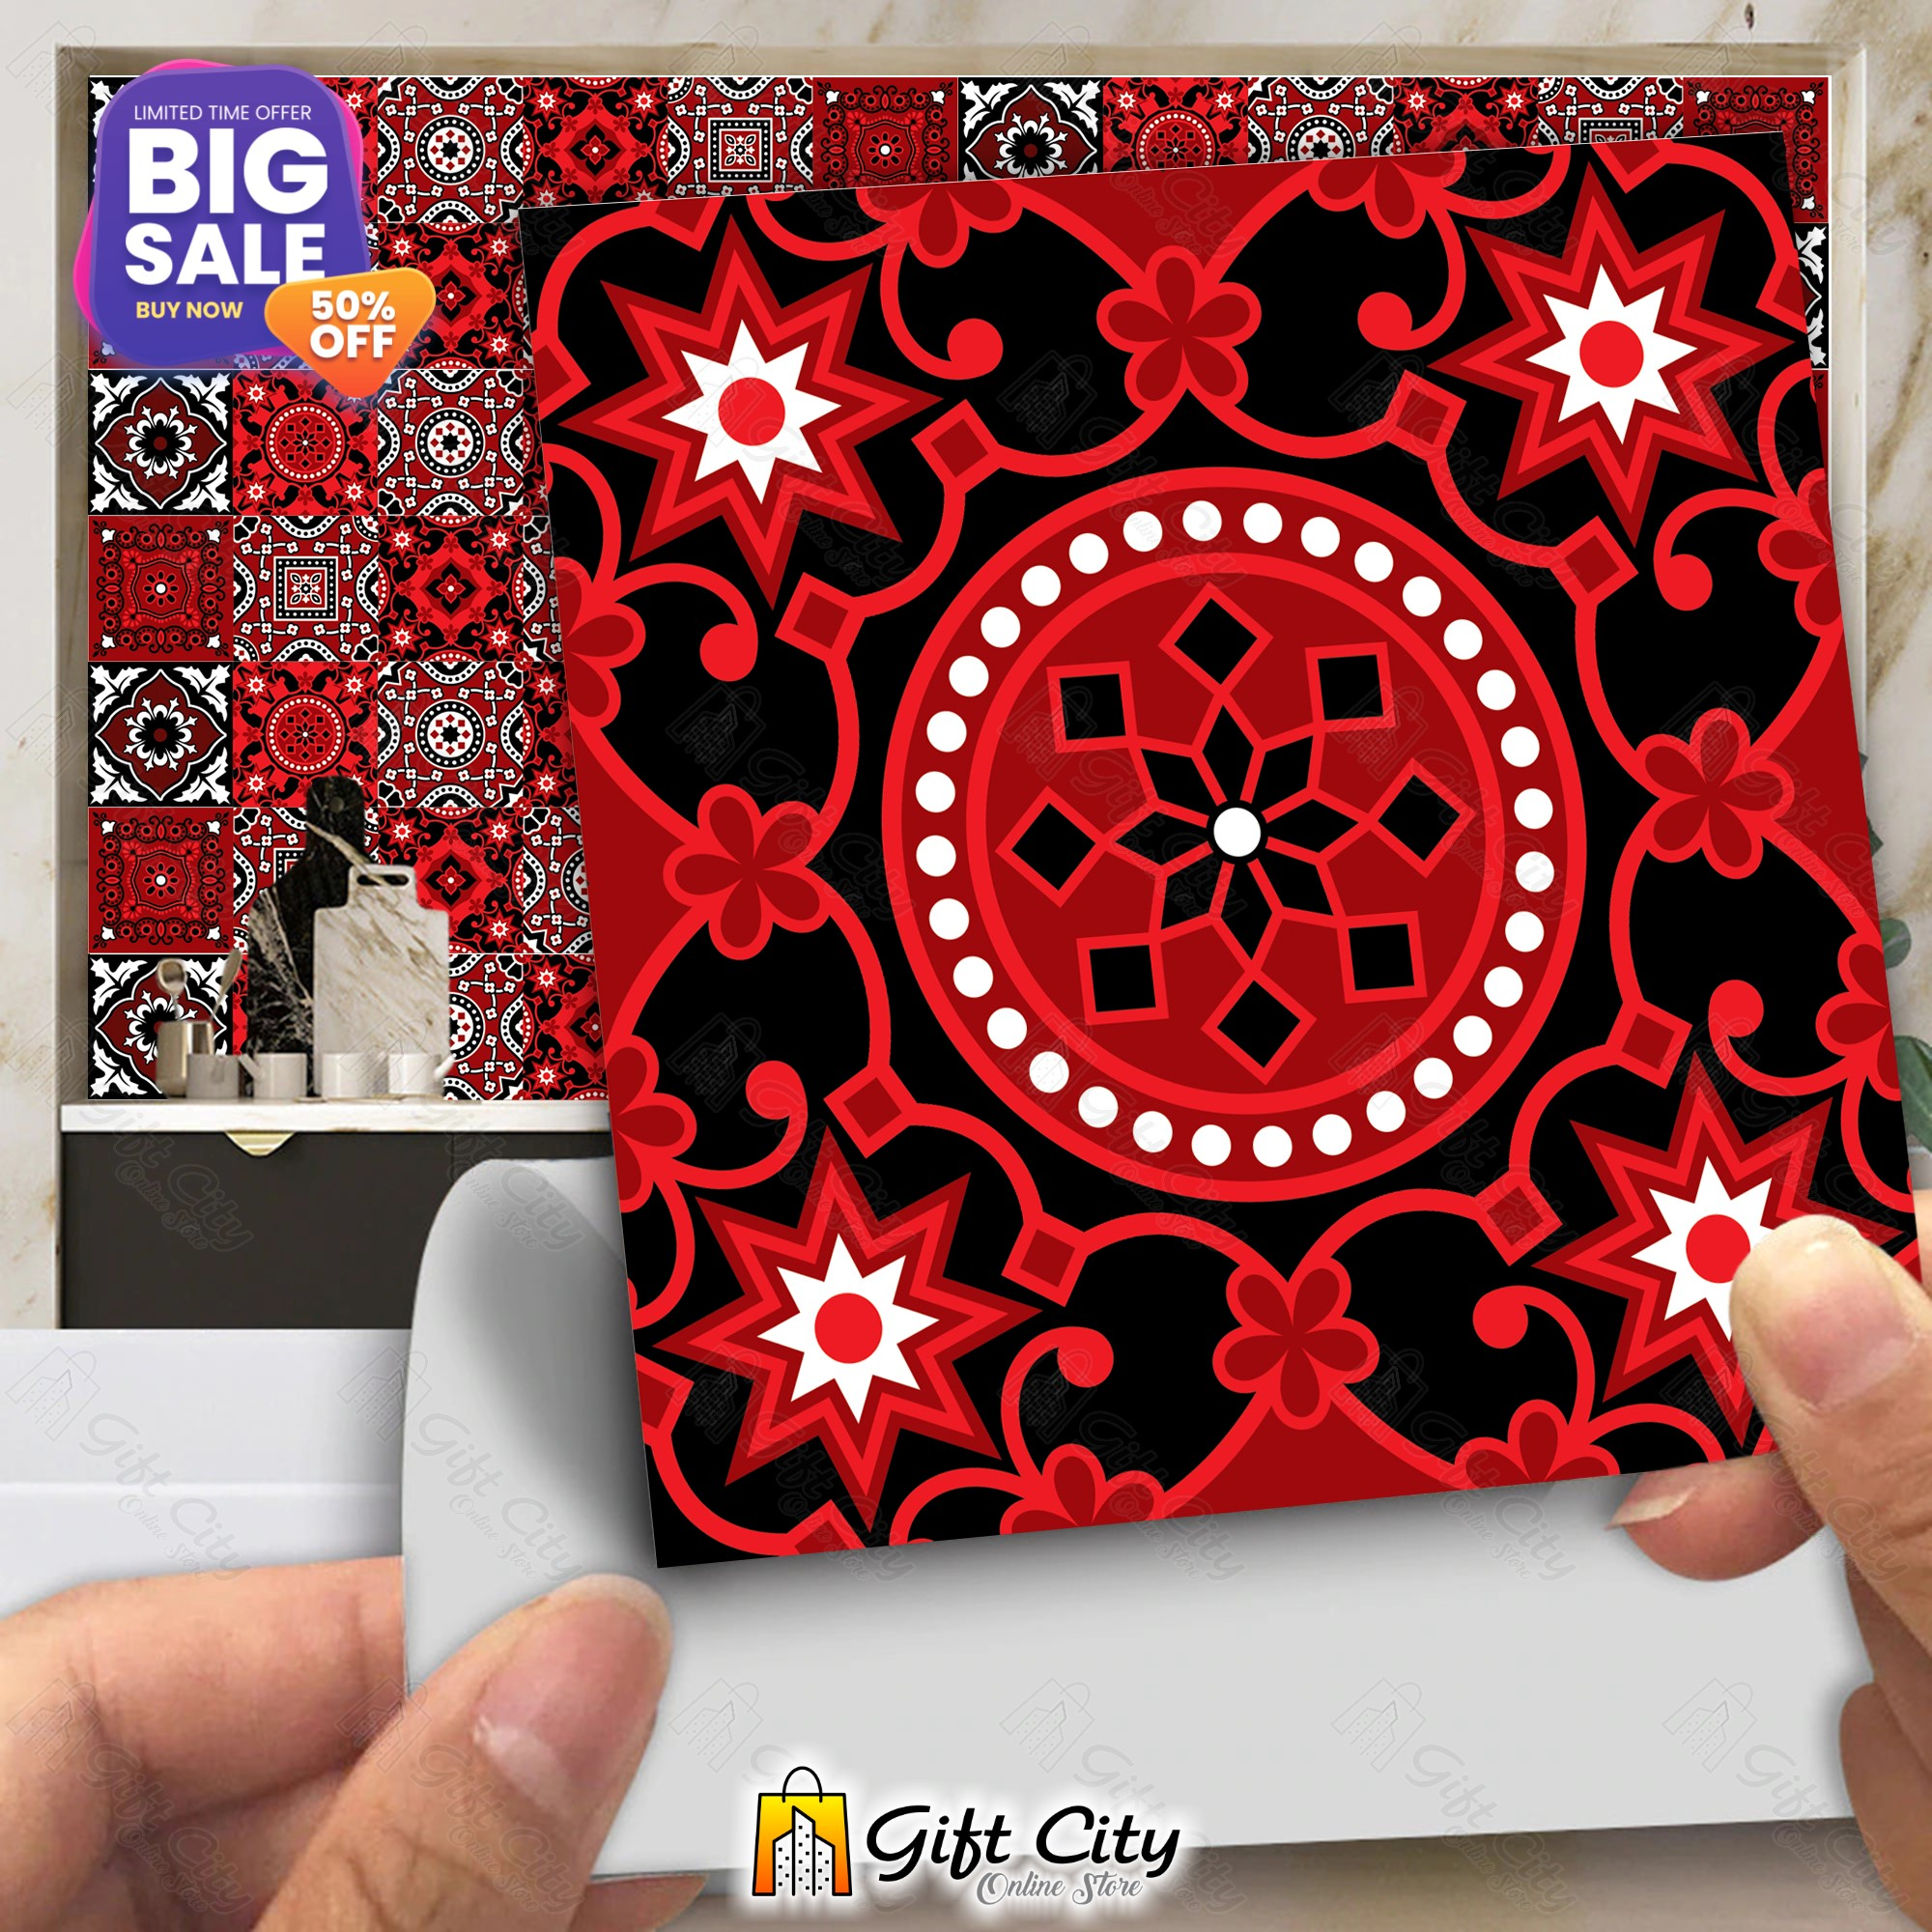 Ajrak Sindhi Tile Stickers Pack of 6 / 12 / 24 / 48 / 102 Pcs 12x12 cm Black and Red Design Wall Decorative Self Adhesive Tiles Stickers Kitchen Sticker Wall Wallpaper Border Decoration Gift City